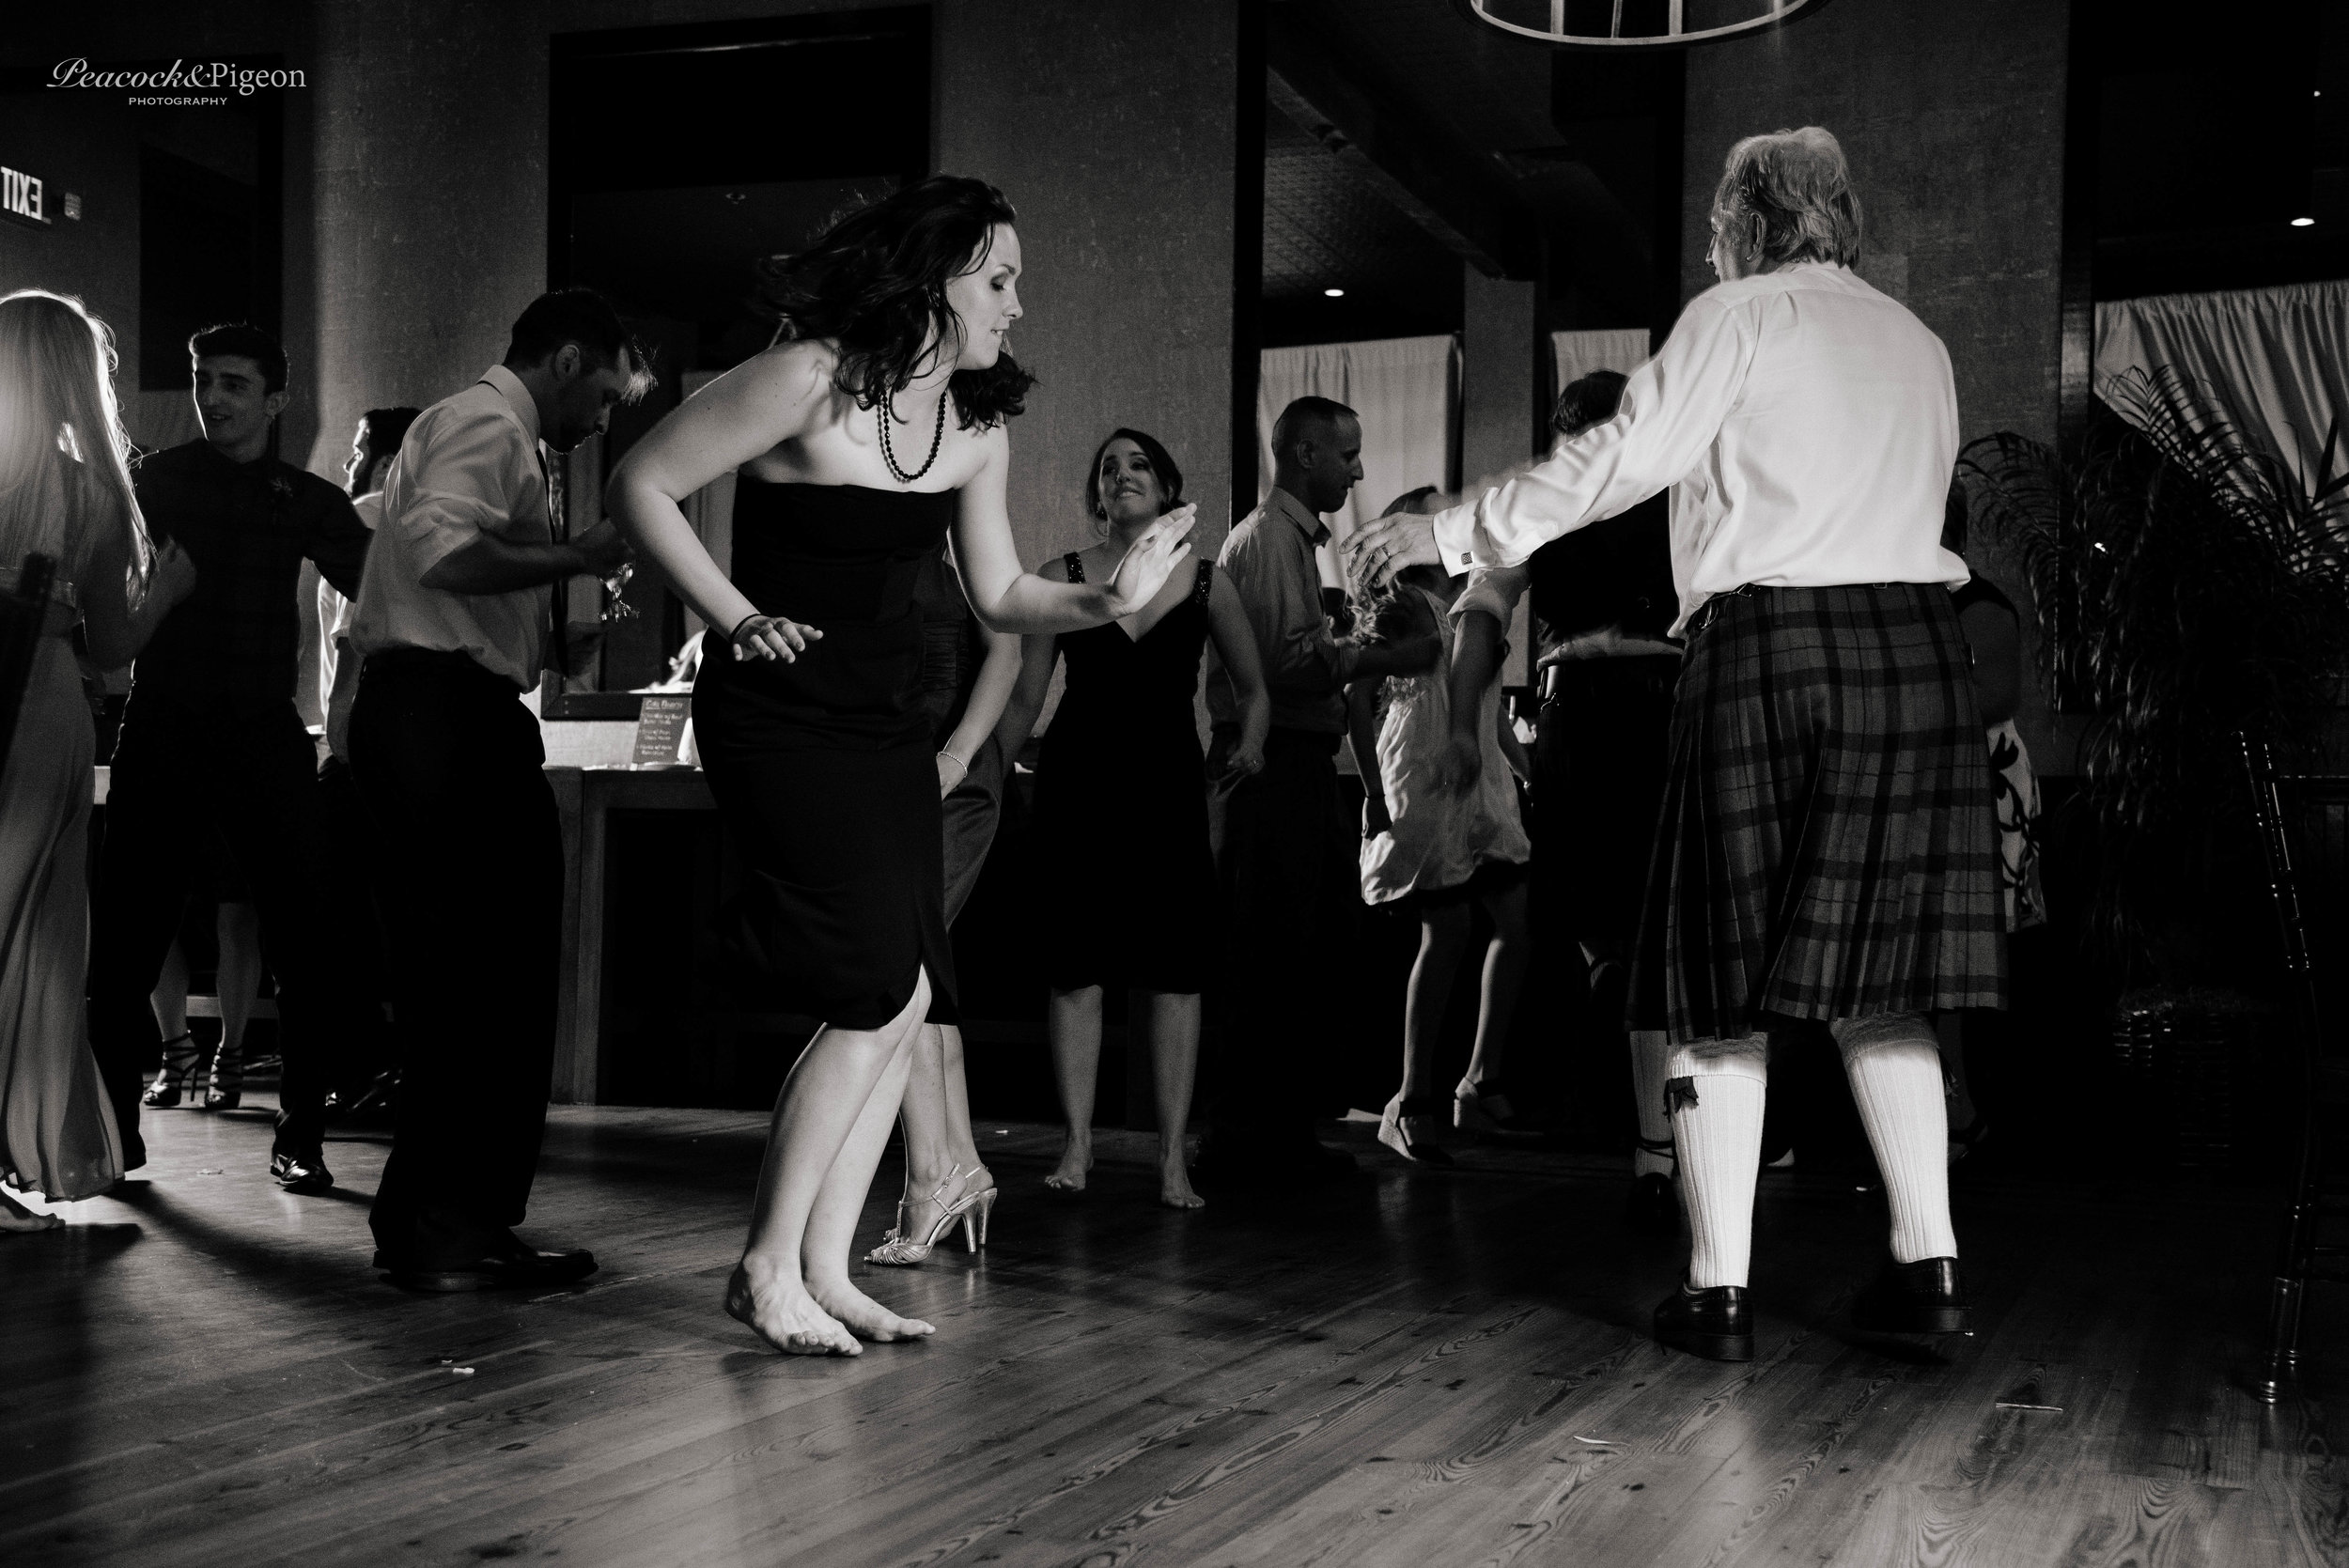 Callum_and_Sara's_Wedding_at_the_Cork_Factory_Hotel_in_Lancaster_Part_Eleven_Dancing_Continued_Black_and_White_Watermarked-34.jpg